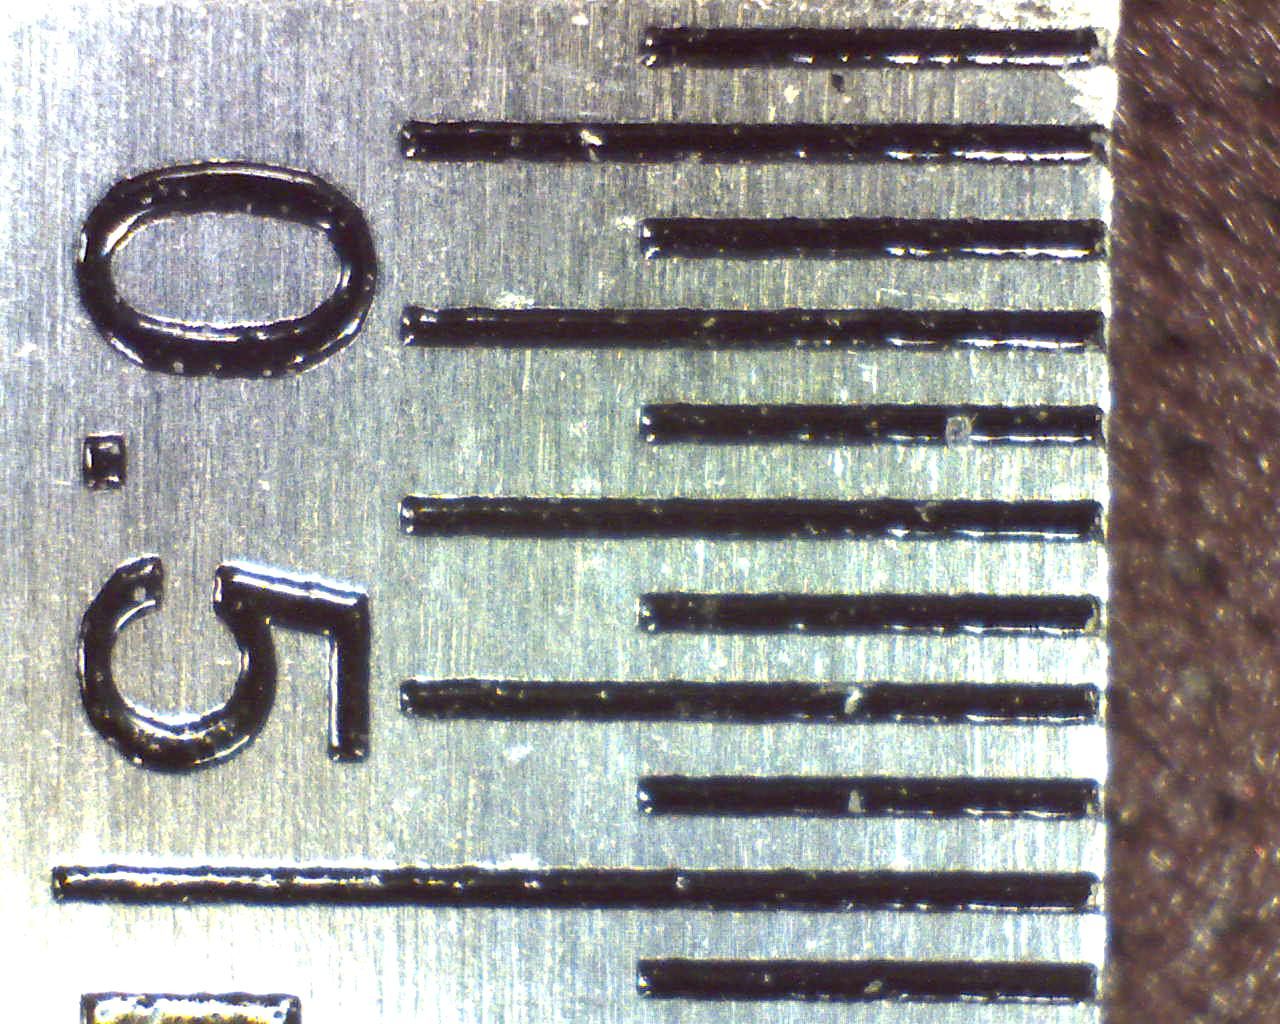 Usb digital microscope's first zoom level of a ruler (markings at 0.5mm)